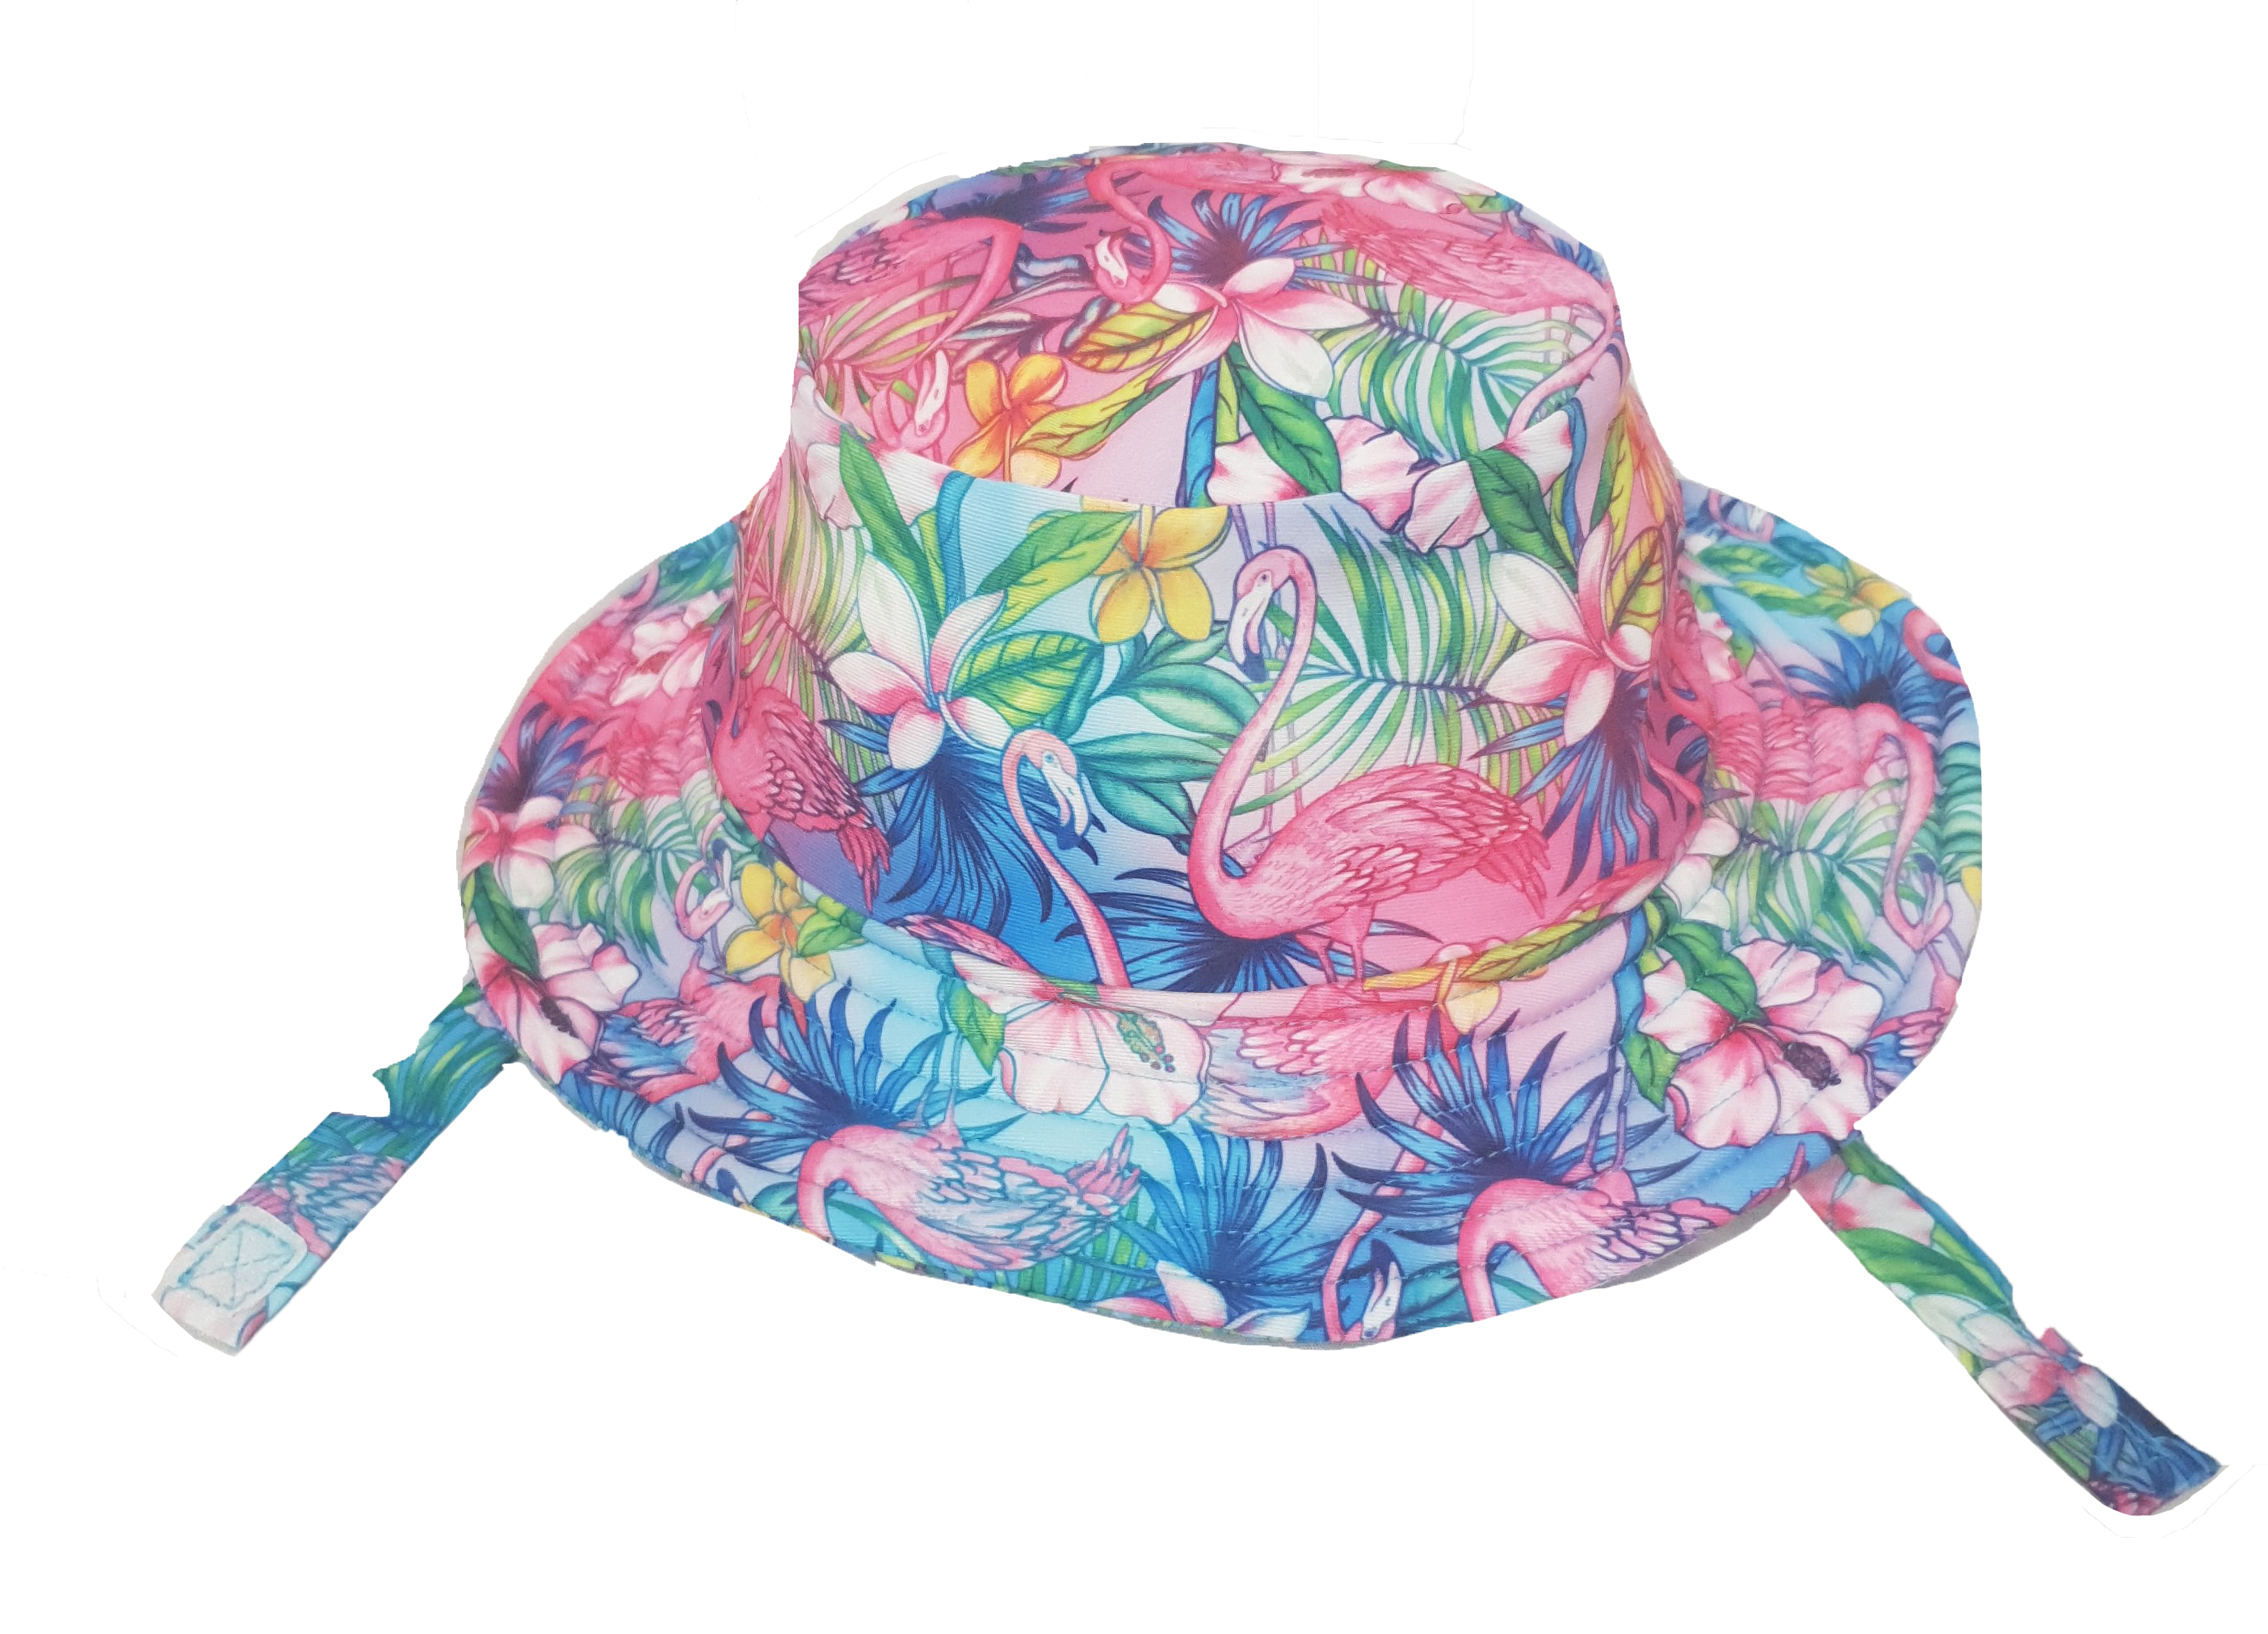 KHB1025-02 Pink Flamingo Bucket Hat